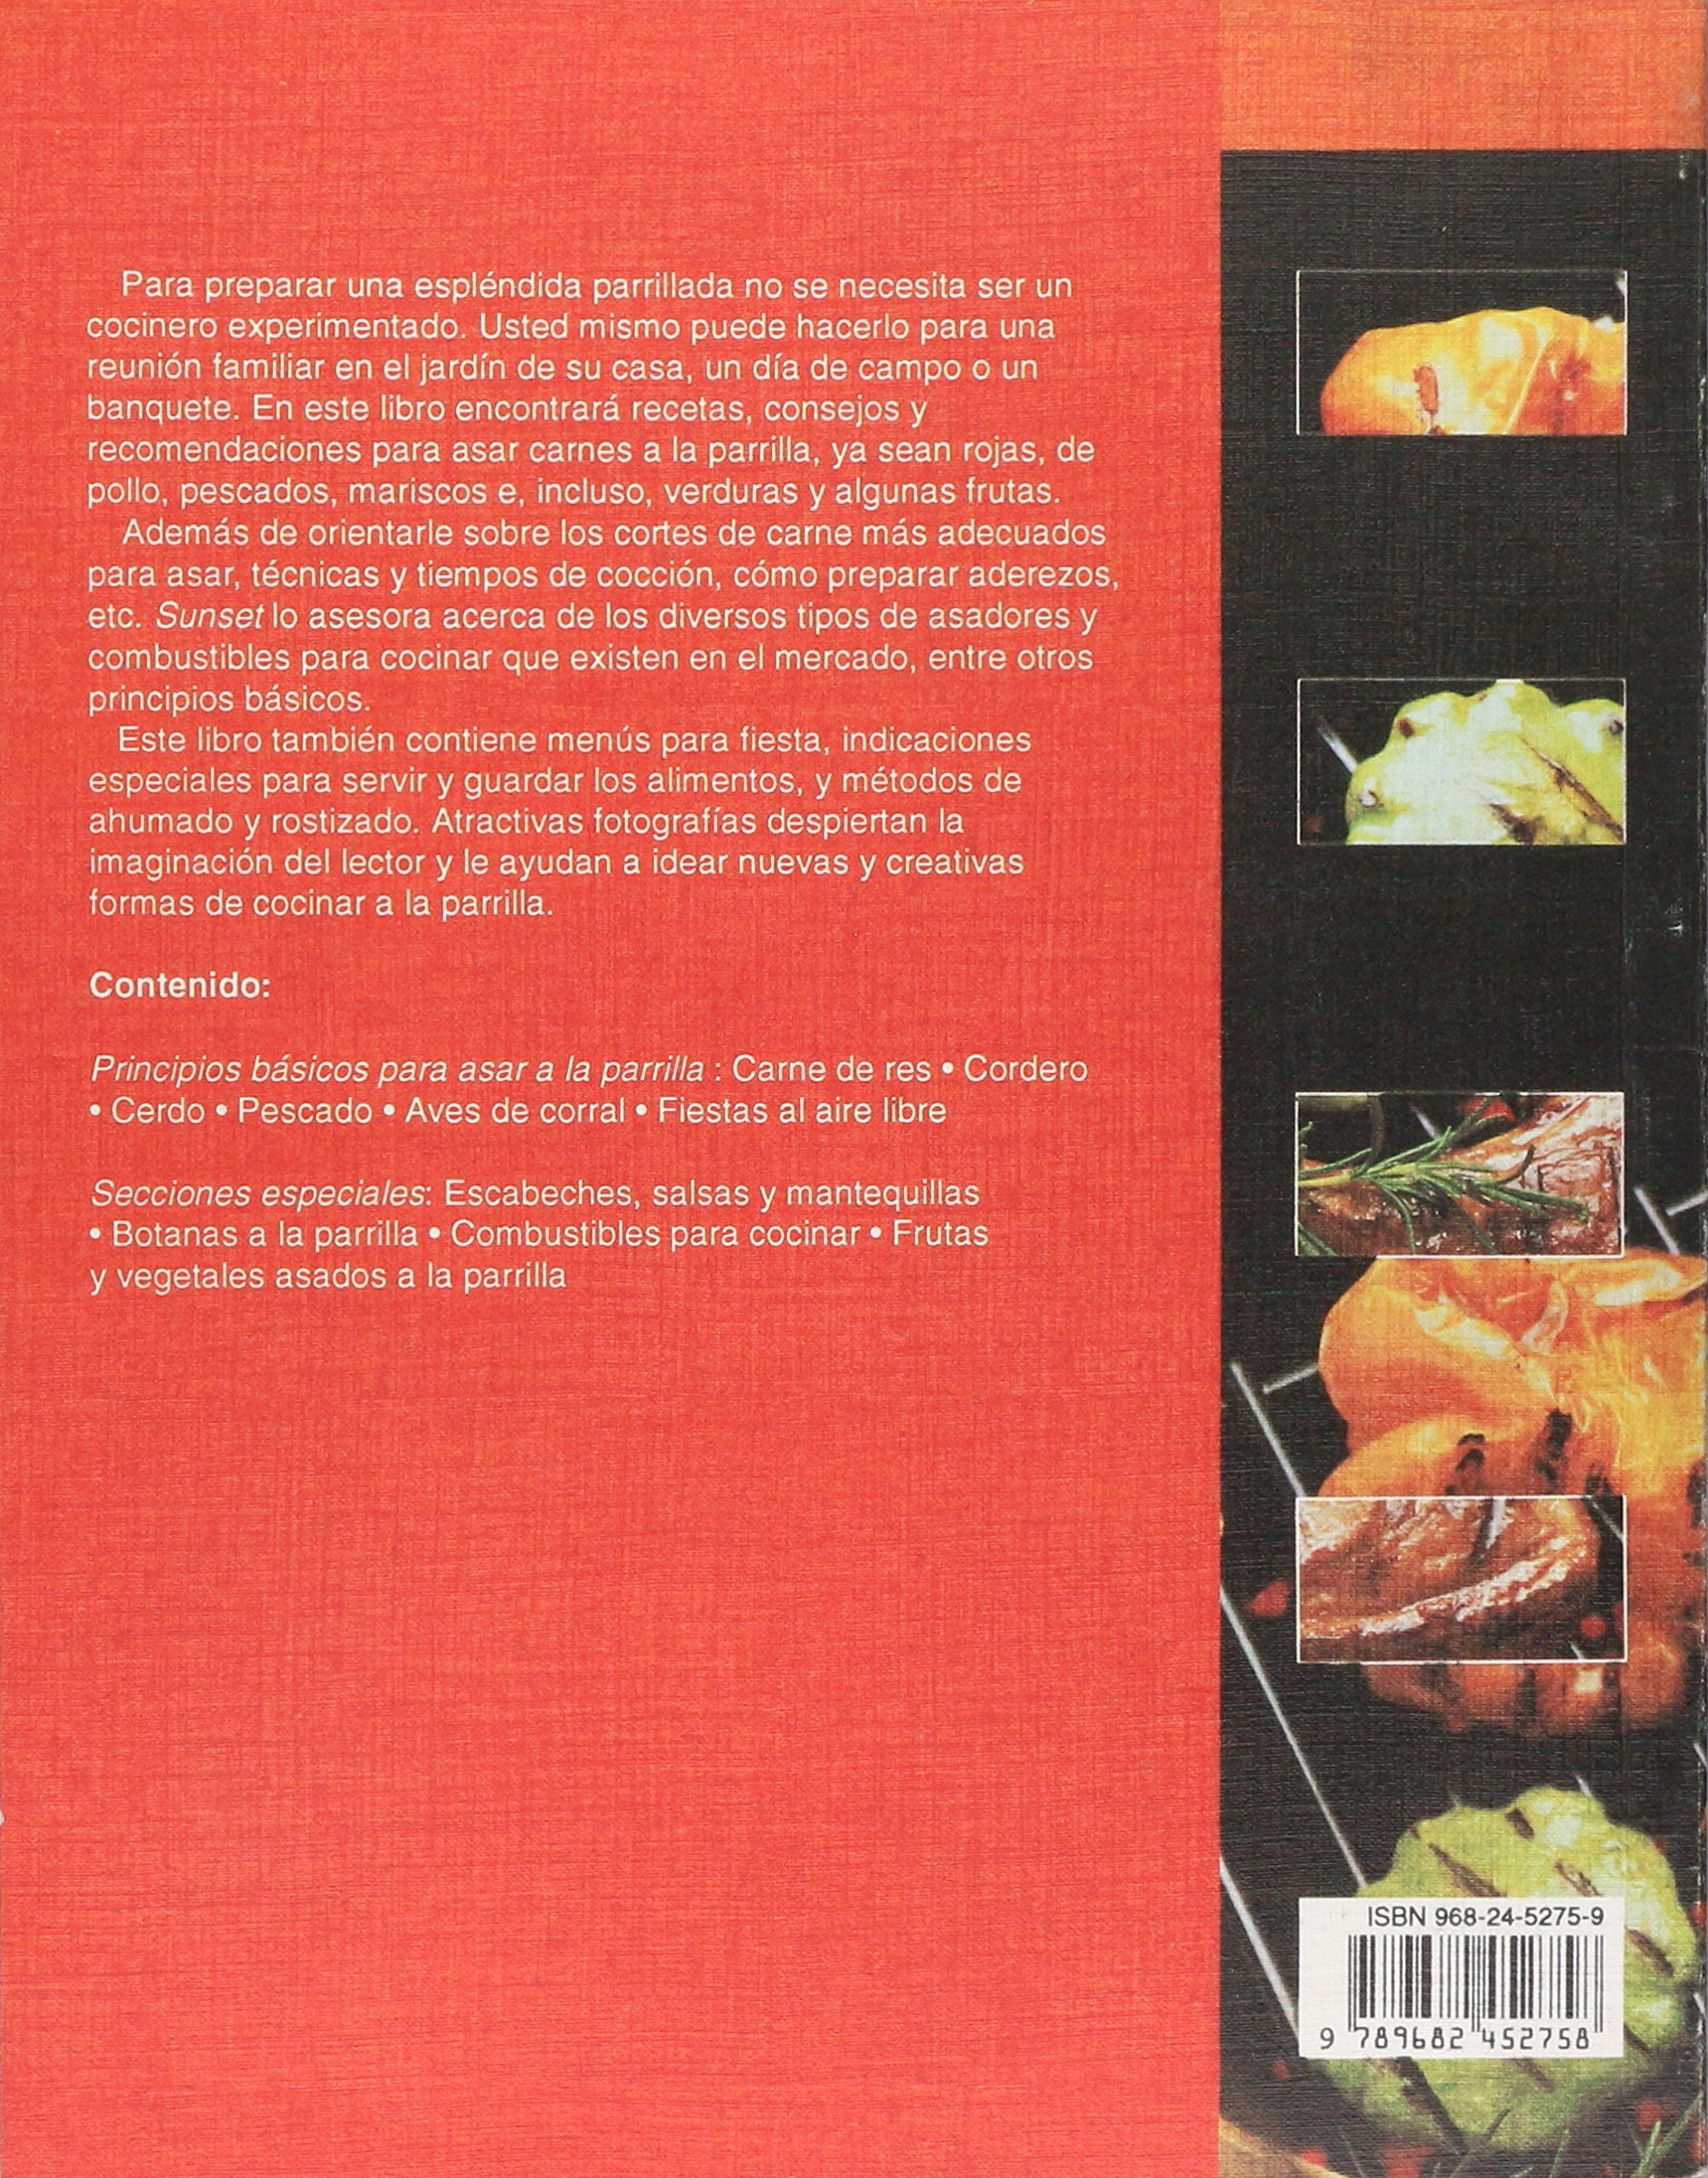 COMO ASAR A LA PARRILLA: TRILLAS SUNSET: 9789682452758 ...